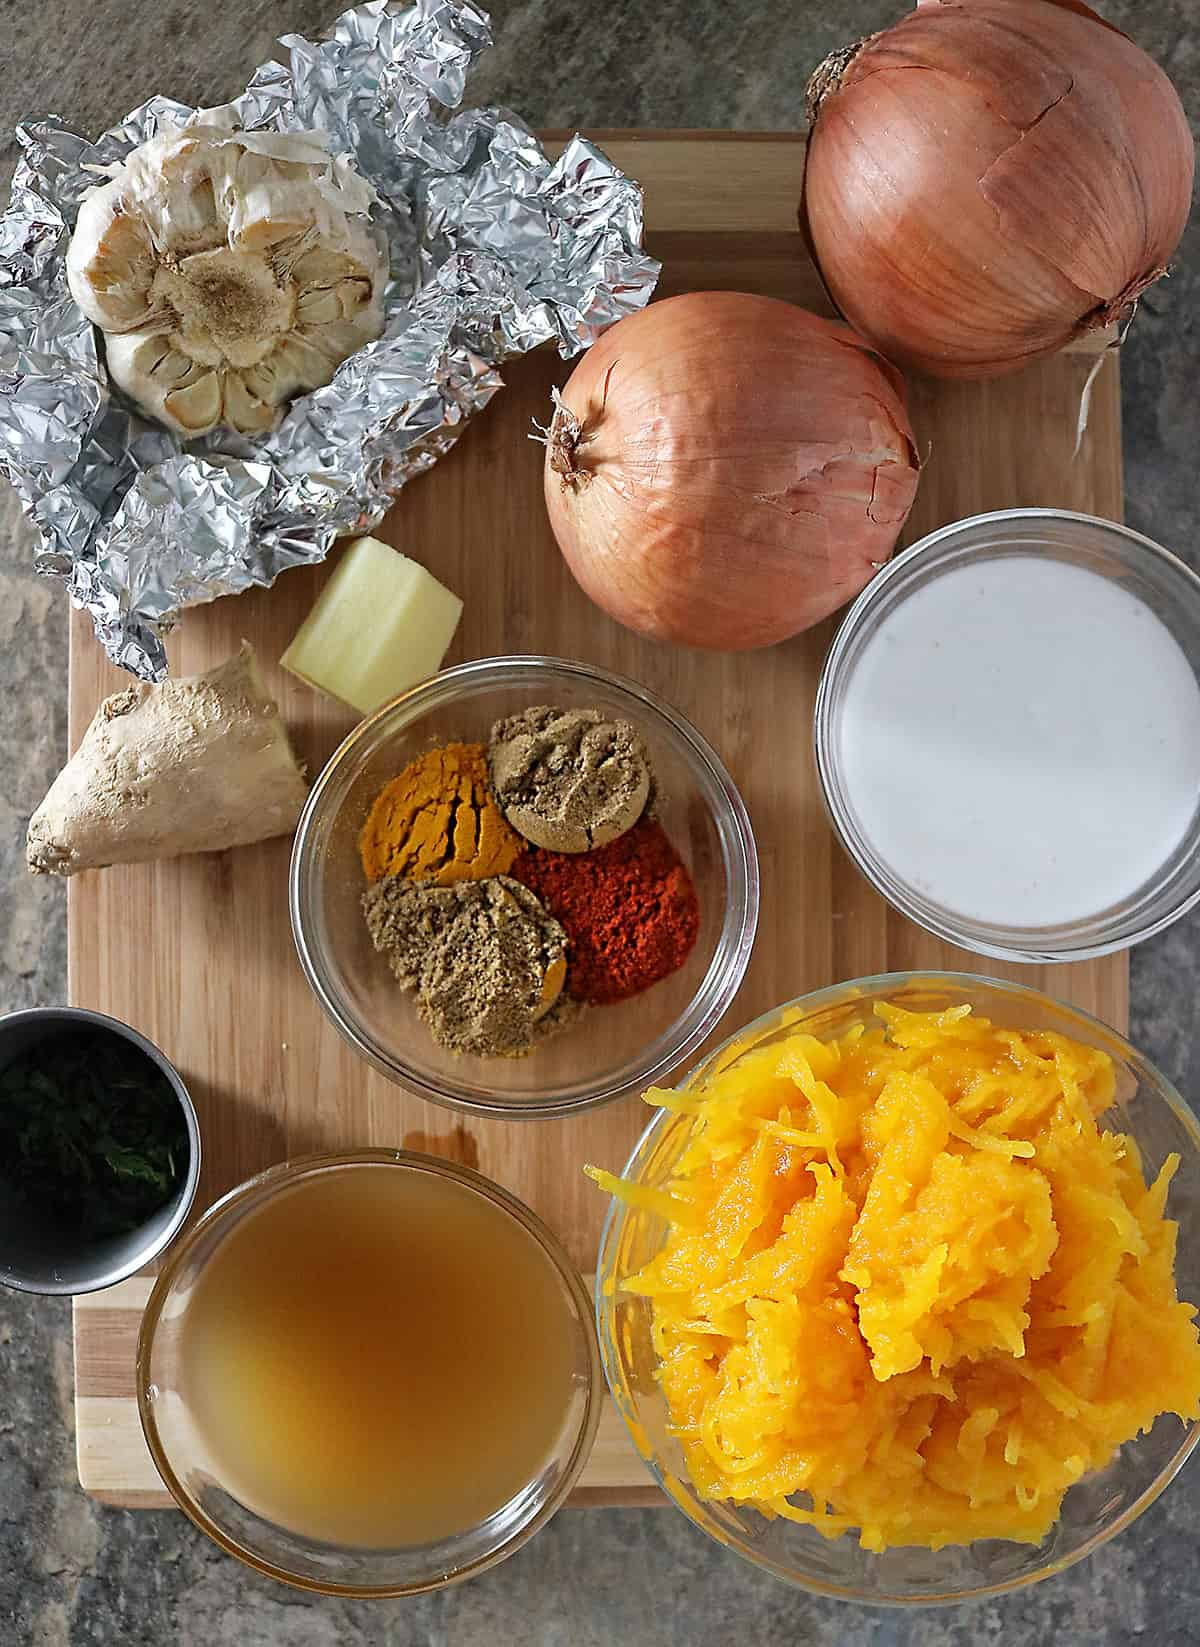 Ingredients To Make Pumpkin Garlic Soup Photo